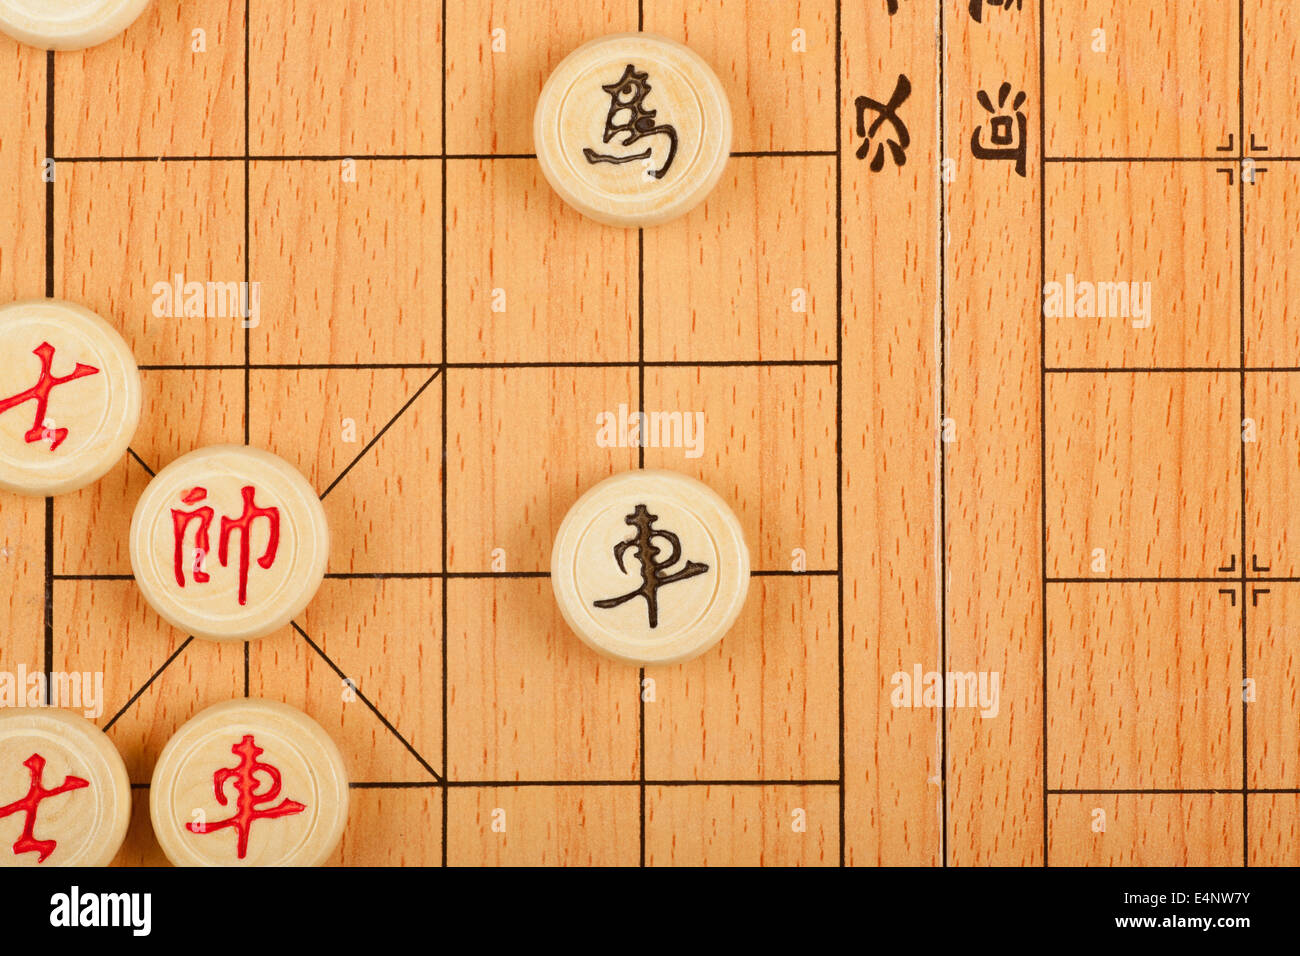 Checkmate in chinese chess - Stock Image